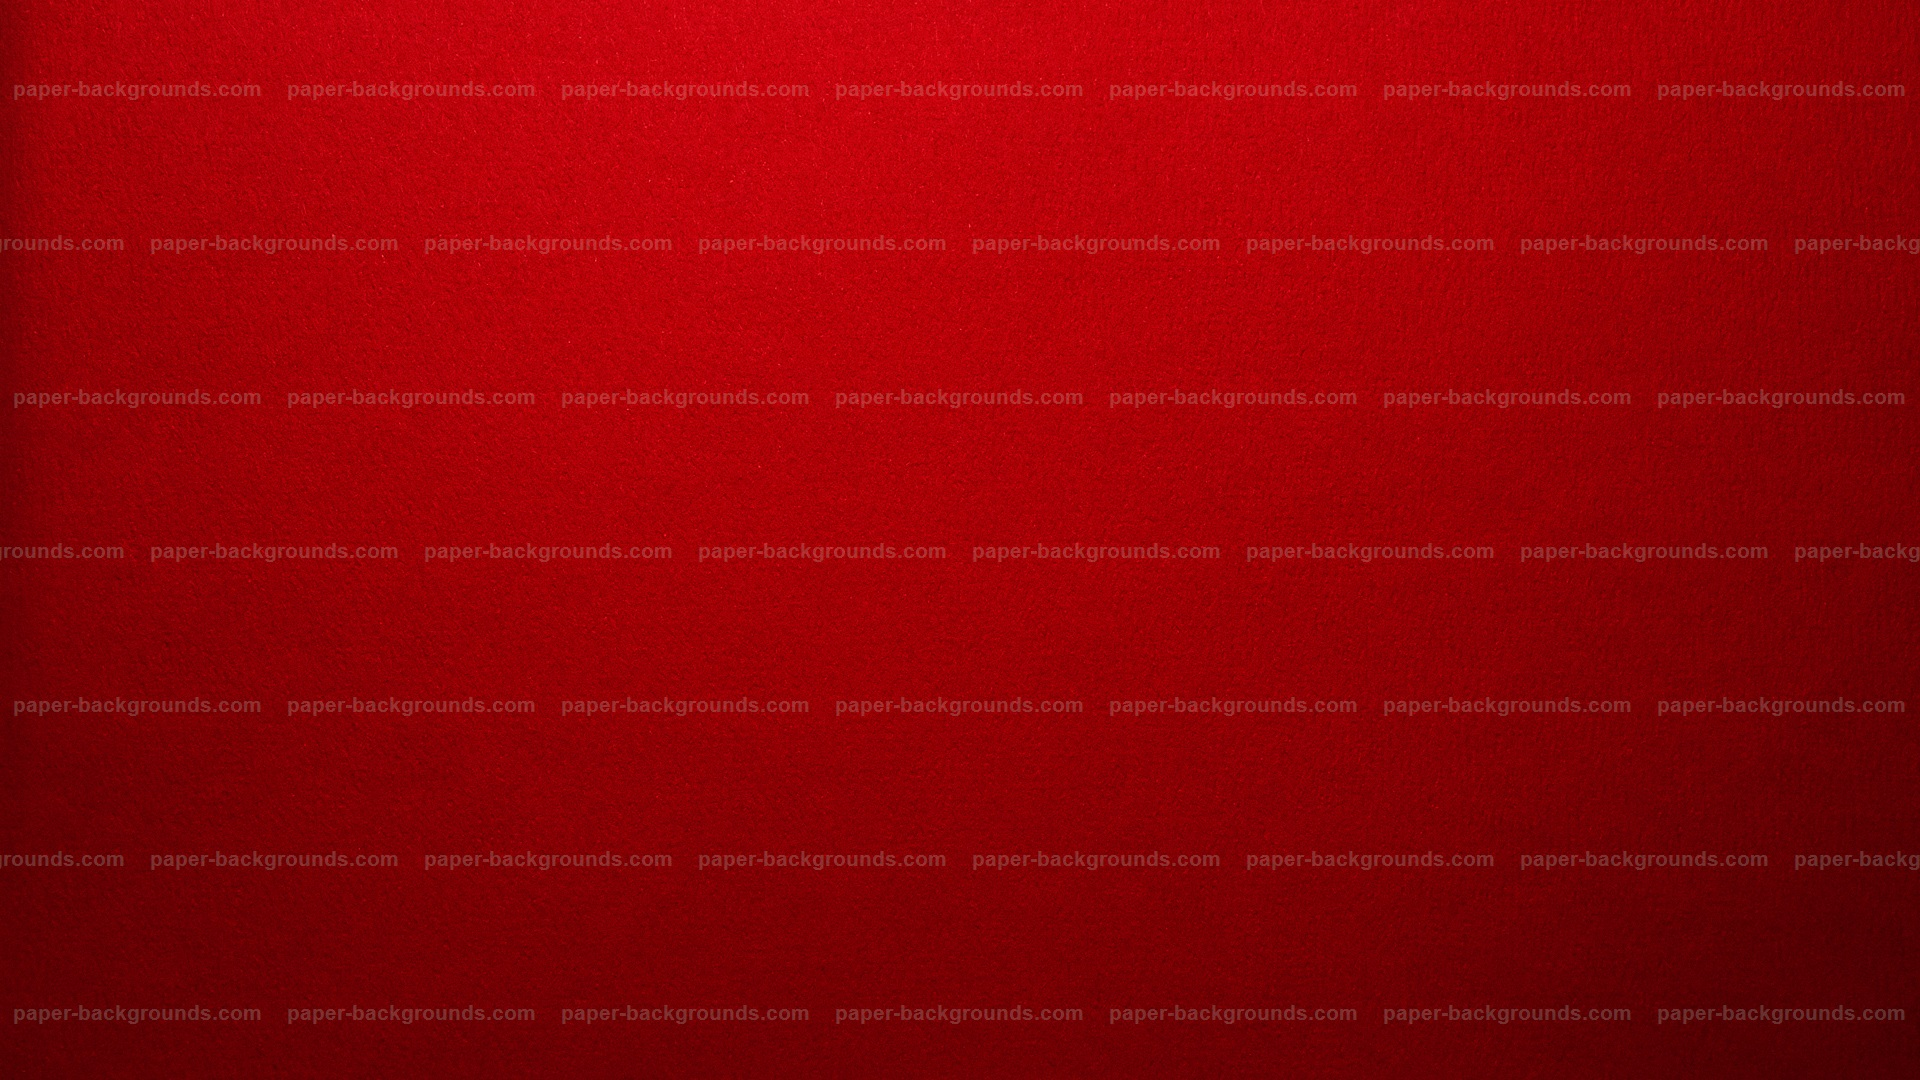 red textured background hd - photo #15